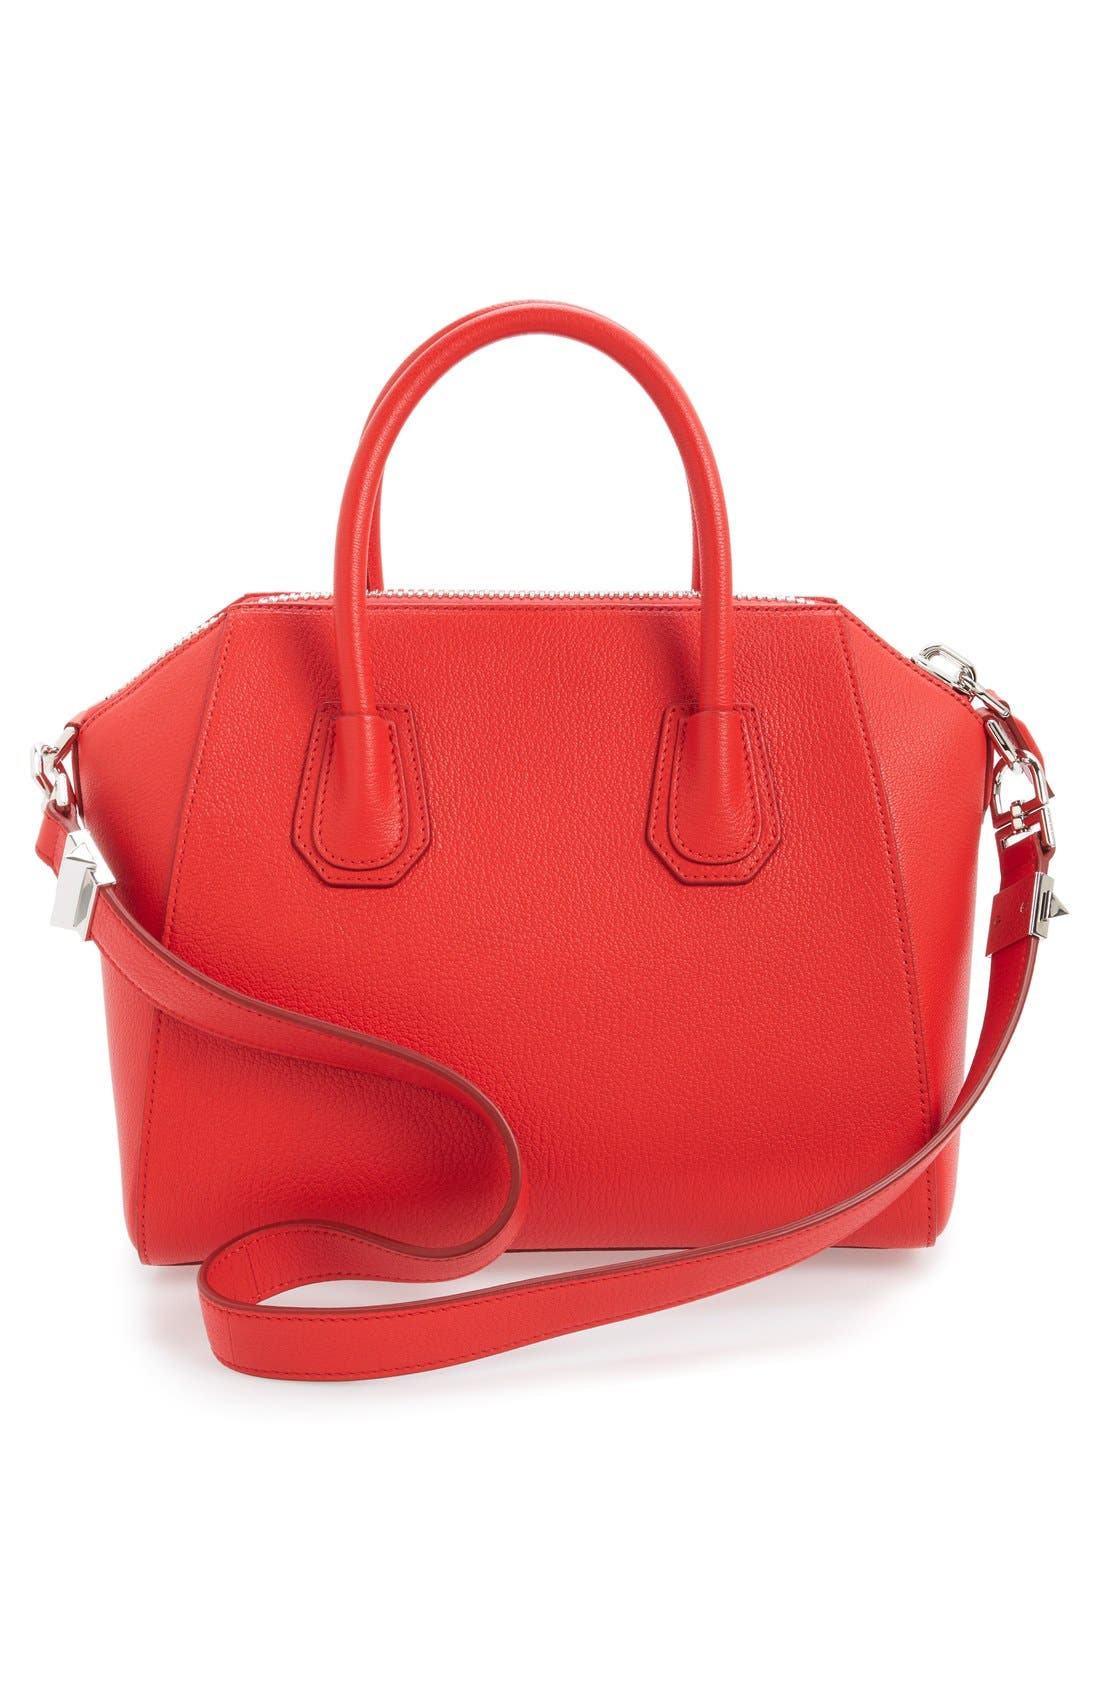 'Small Antigona' Sugar Leather Satchel,                             Alternate thumbnail 14, color,